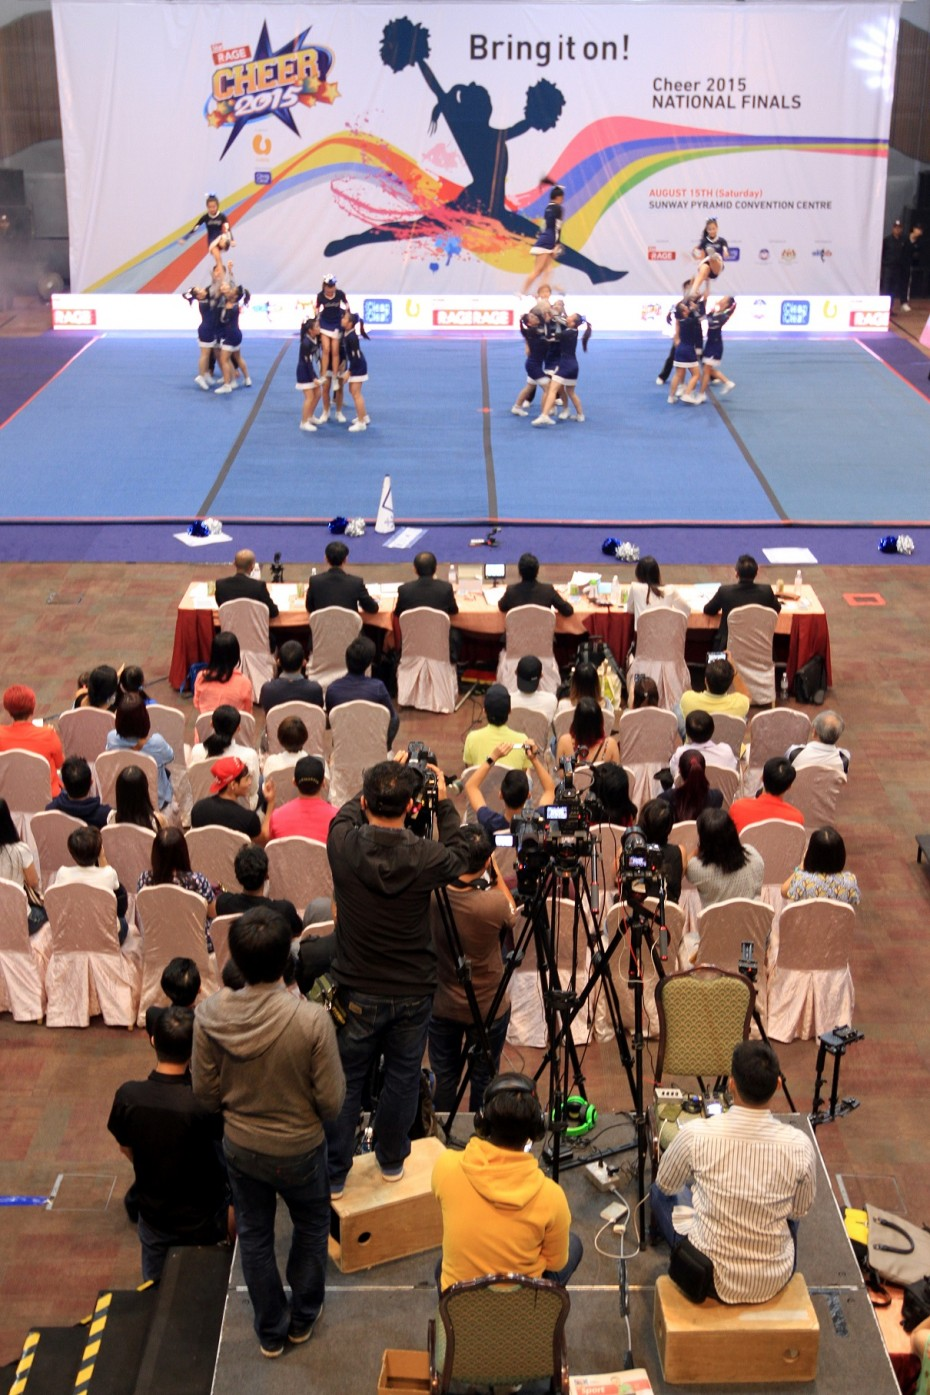 The video crew worked non-stop, making video after video of each of the 39 team's three-minute routines. This was then edited and uploaded on the R.AGE website in less than 10 minutes. -- Photo: SAM THAM/The Star